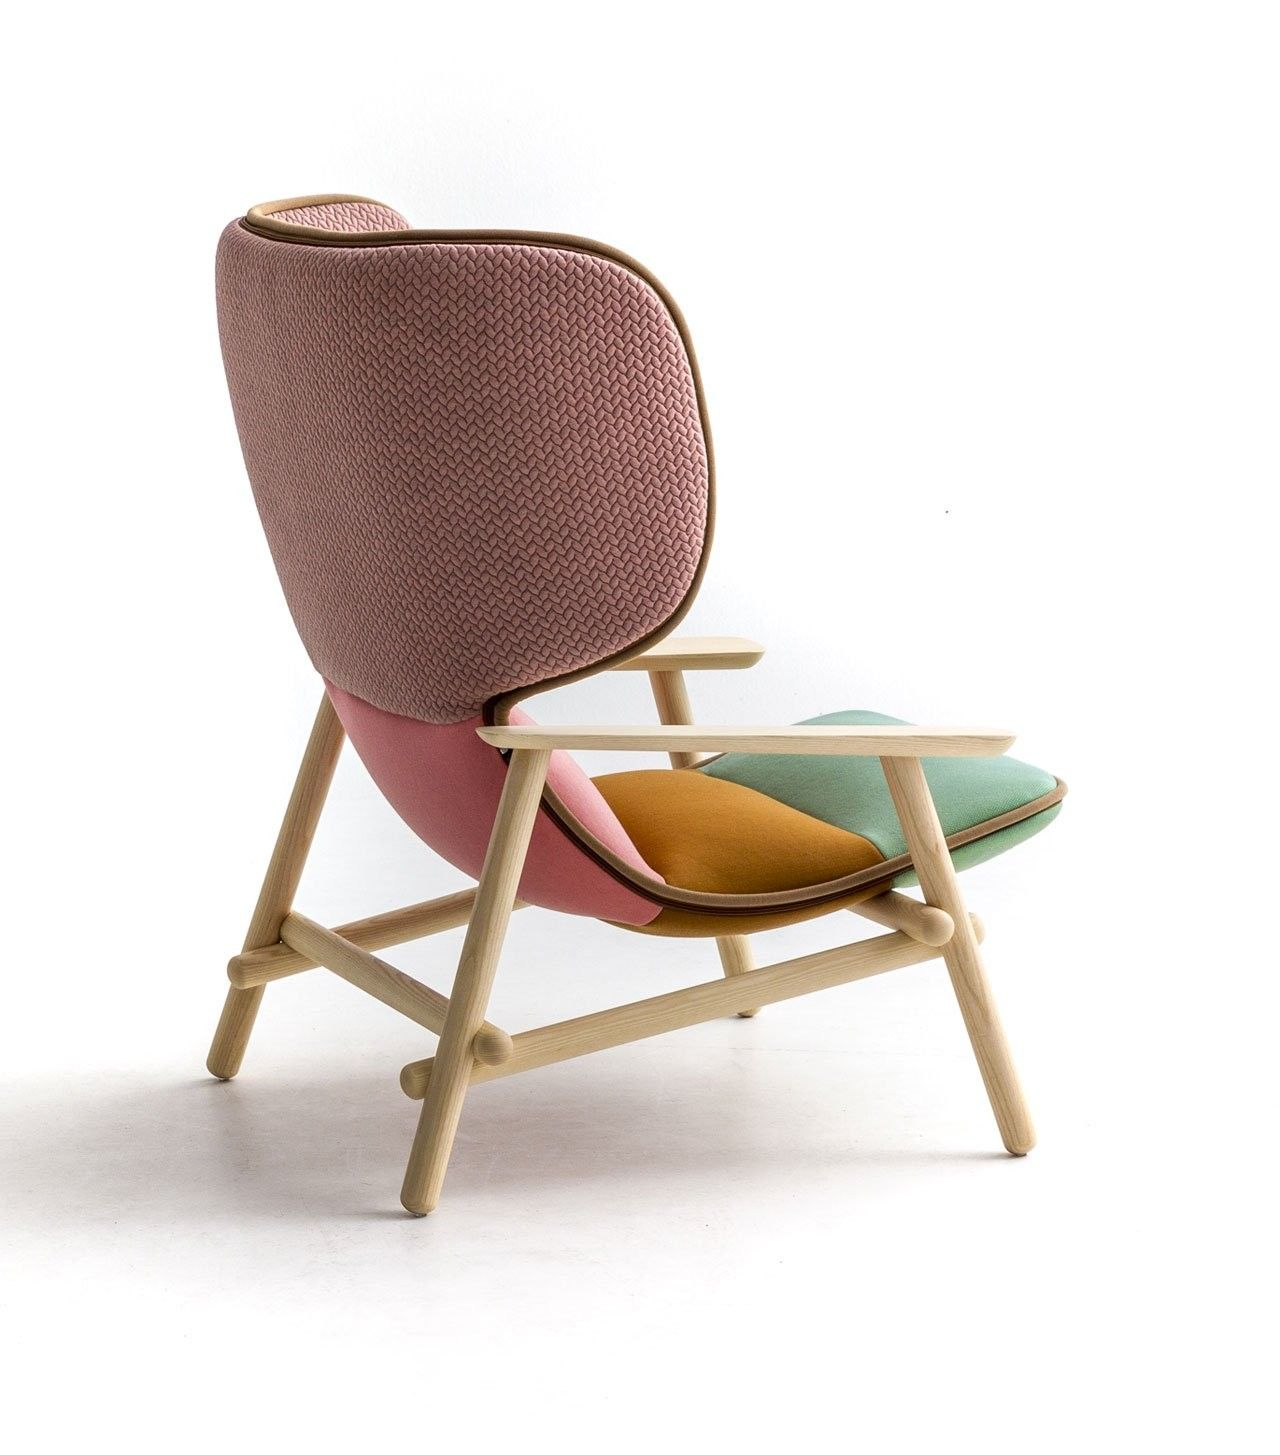 Lilo By Moroso De Versum Is An Online Design Magazine Whose Main Purpose Is To Educate And Support All Field Furniture Furniture Upholstery Furniture Chair